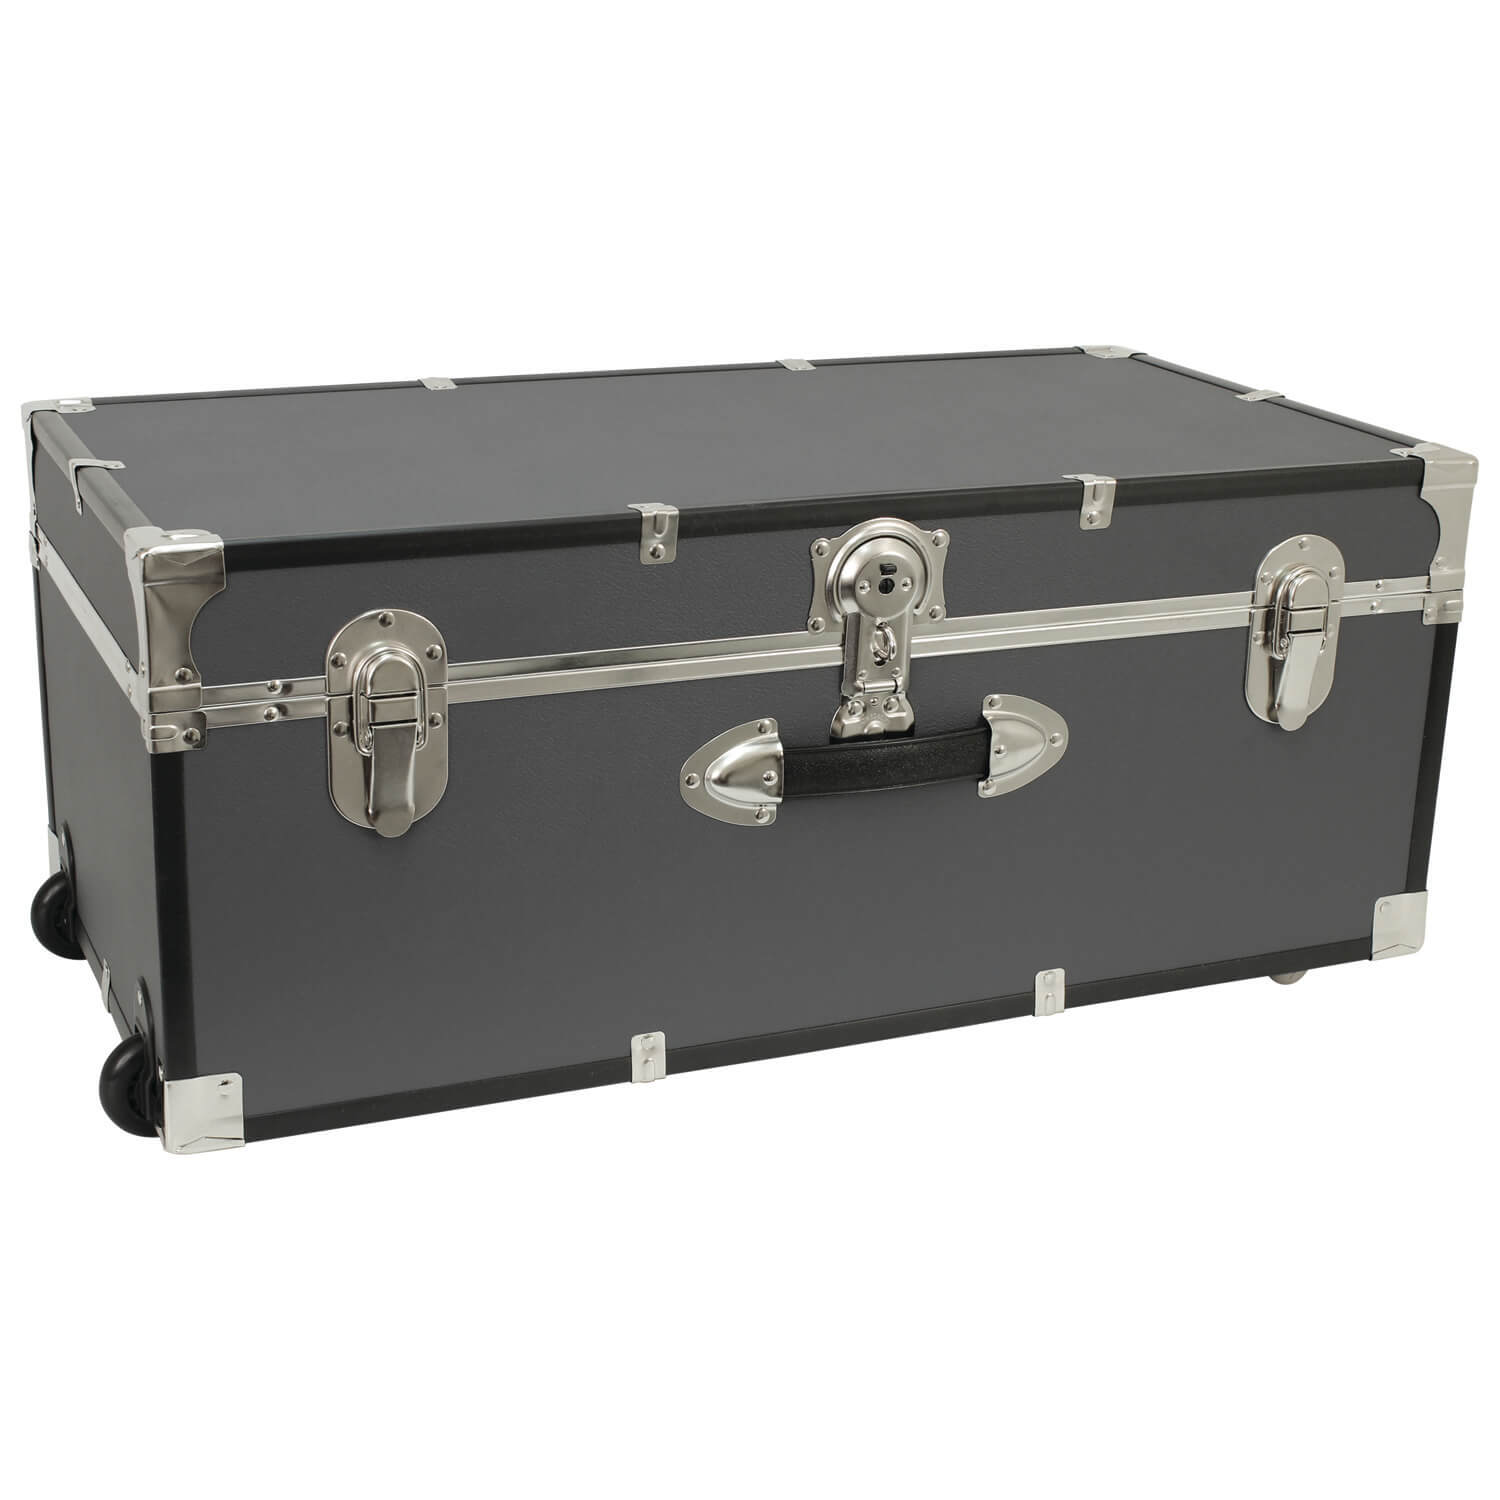 Large Luggage Trunk with Wheels - Grey